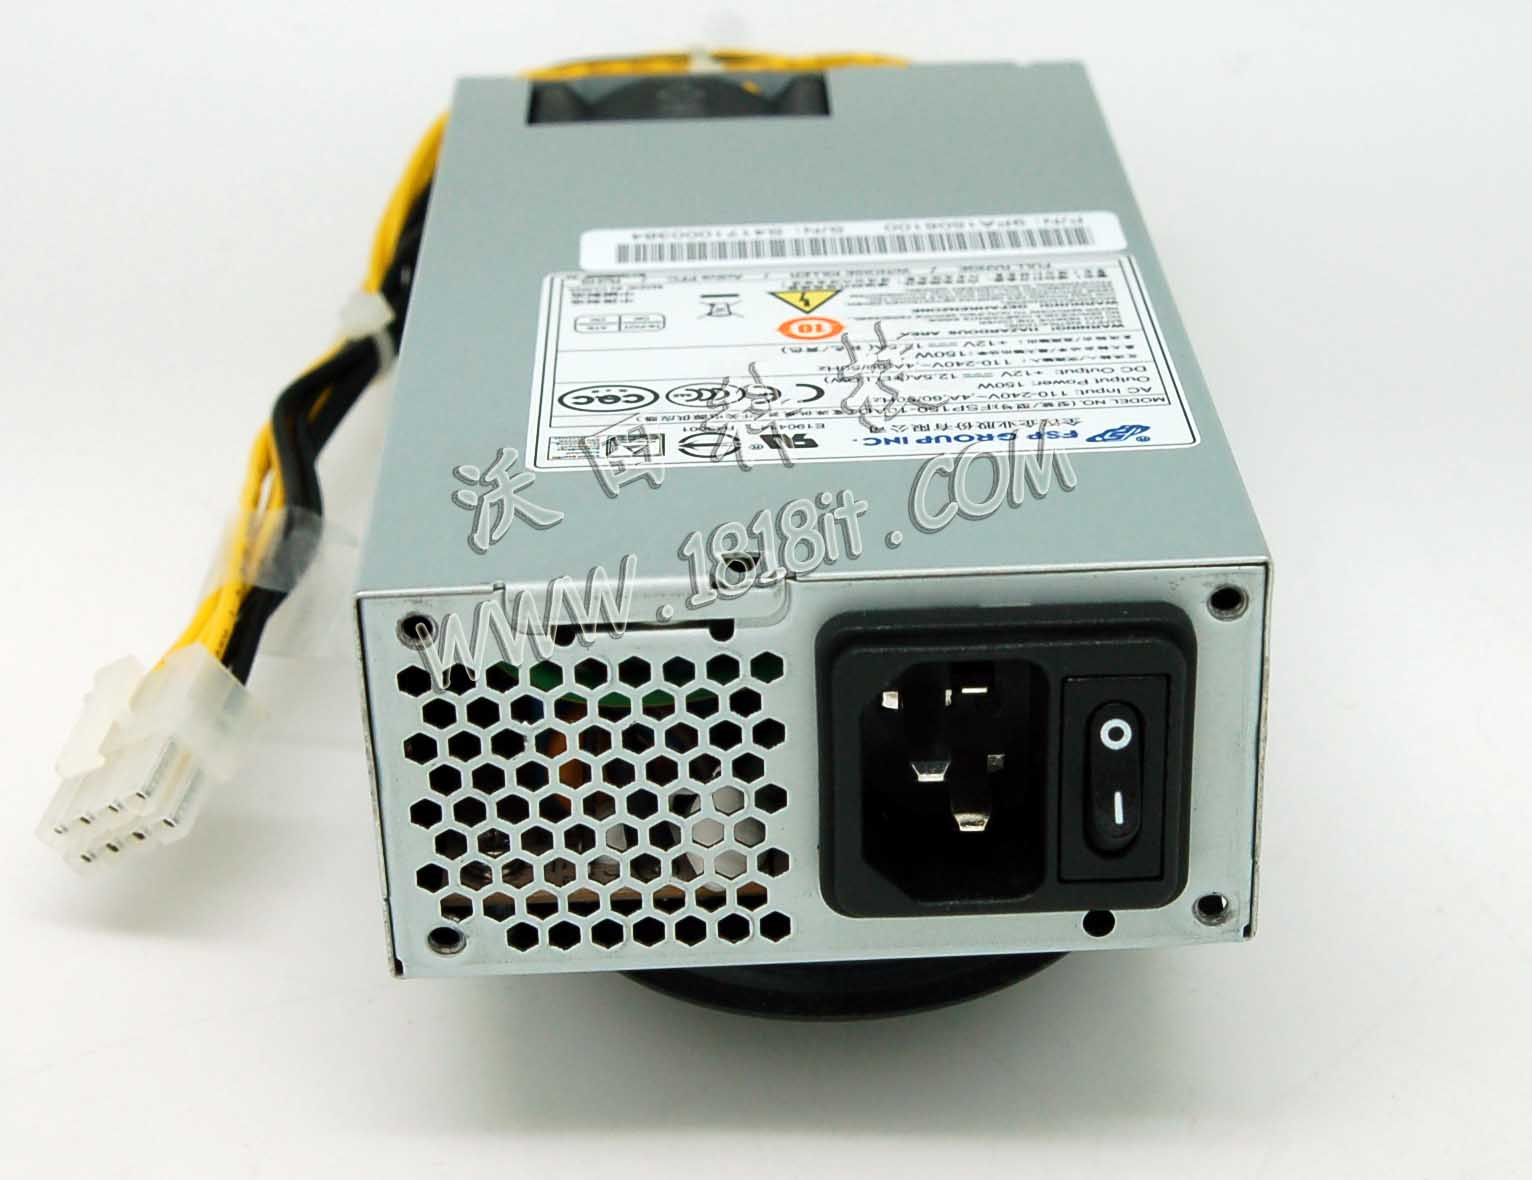 dahua dvr fsp fsp150-10ad 150w 1u power supply 12v 12.5a